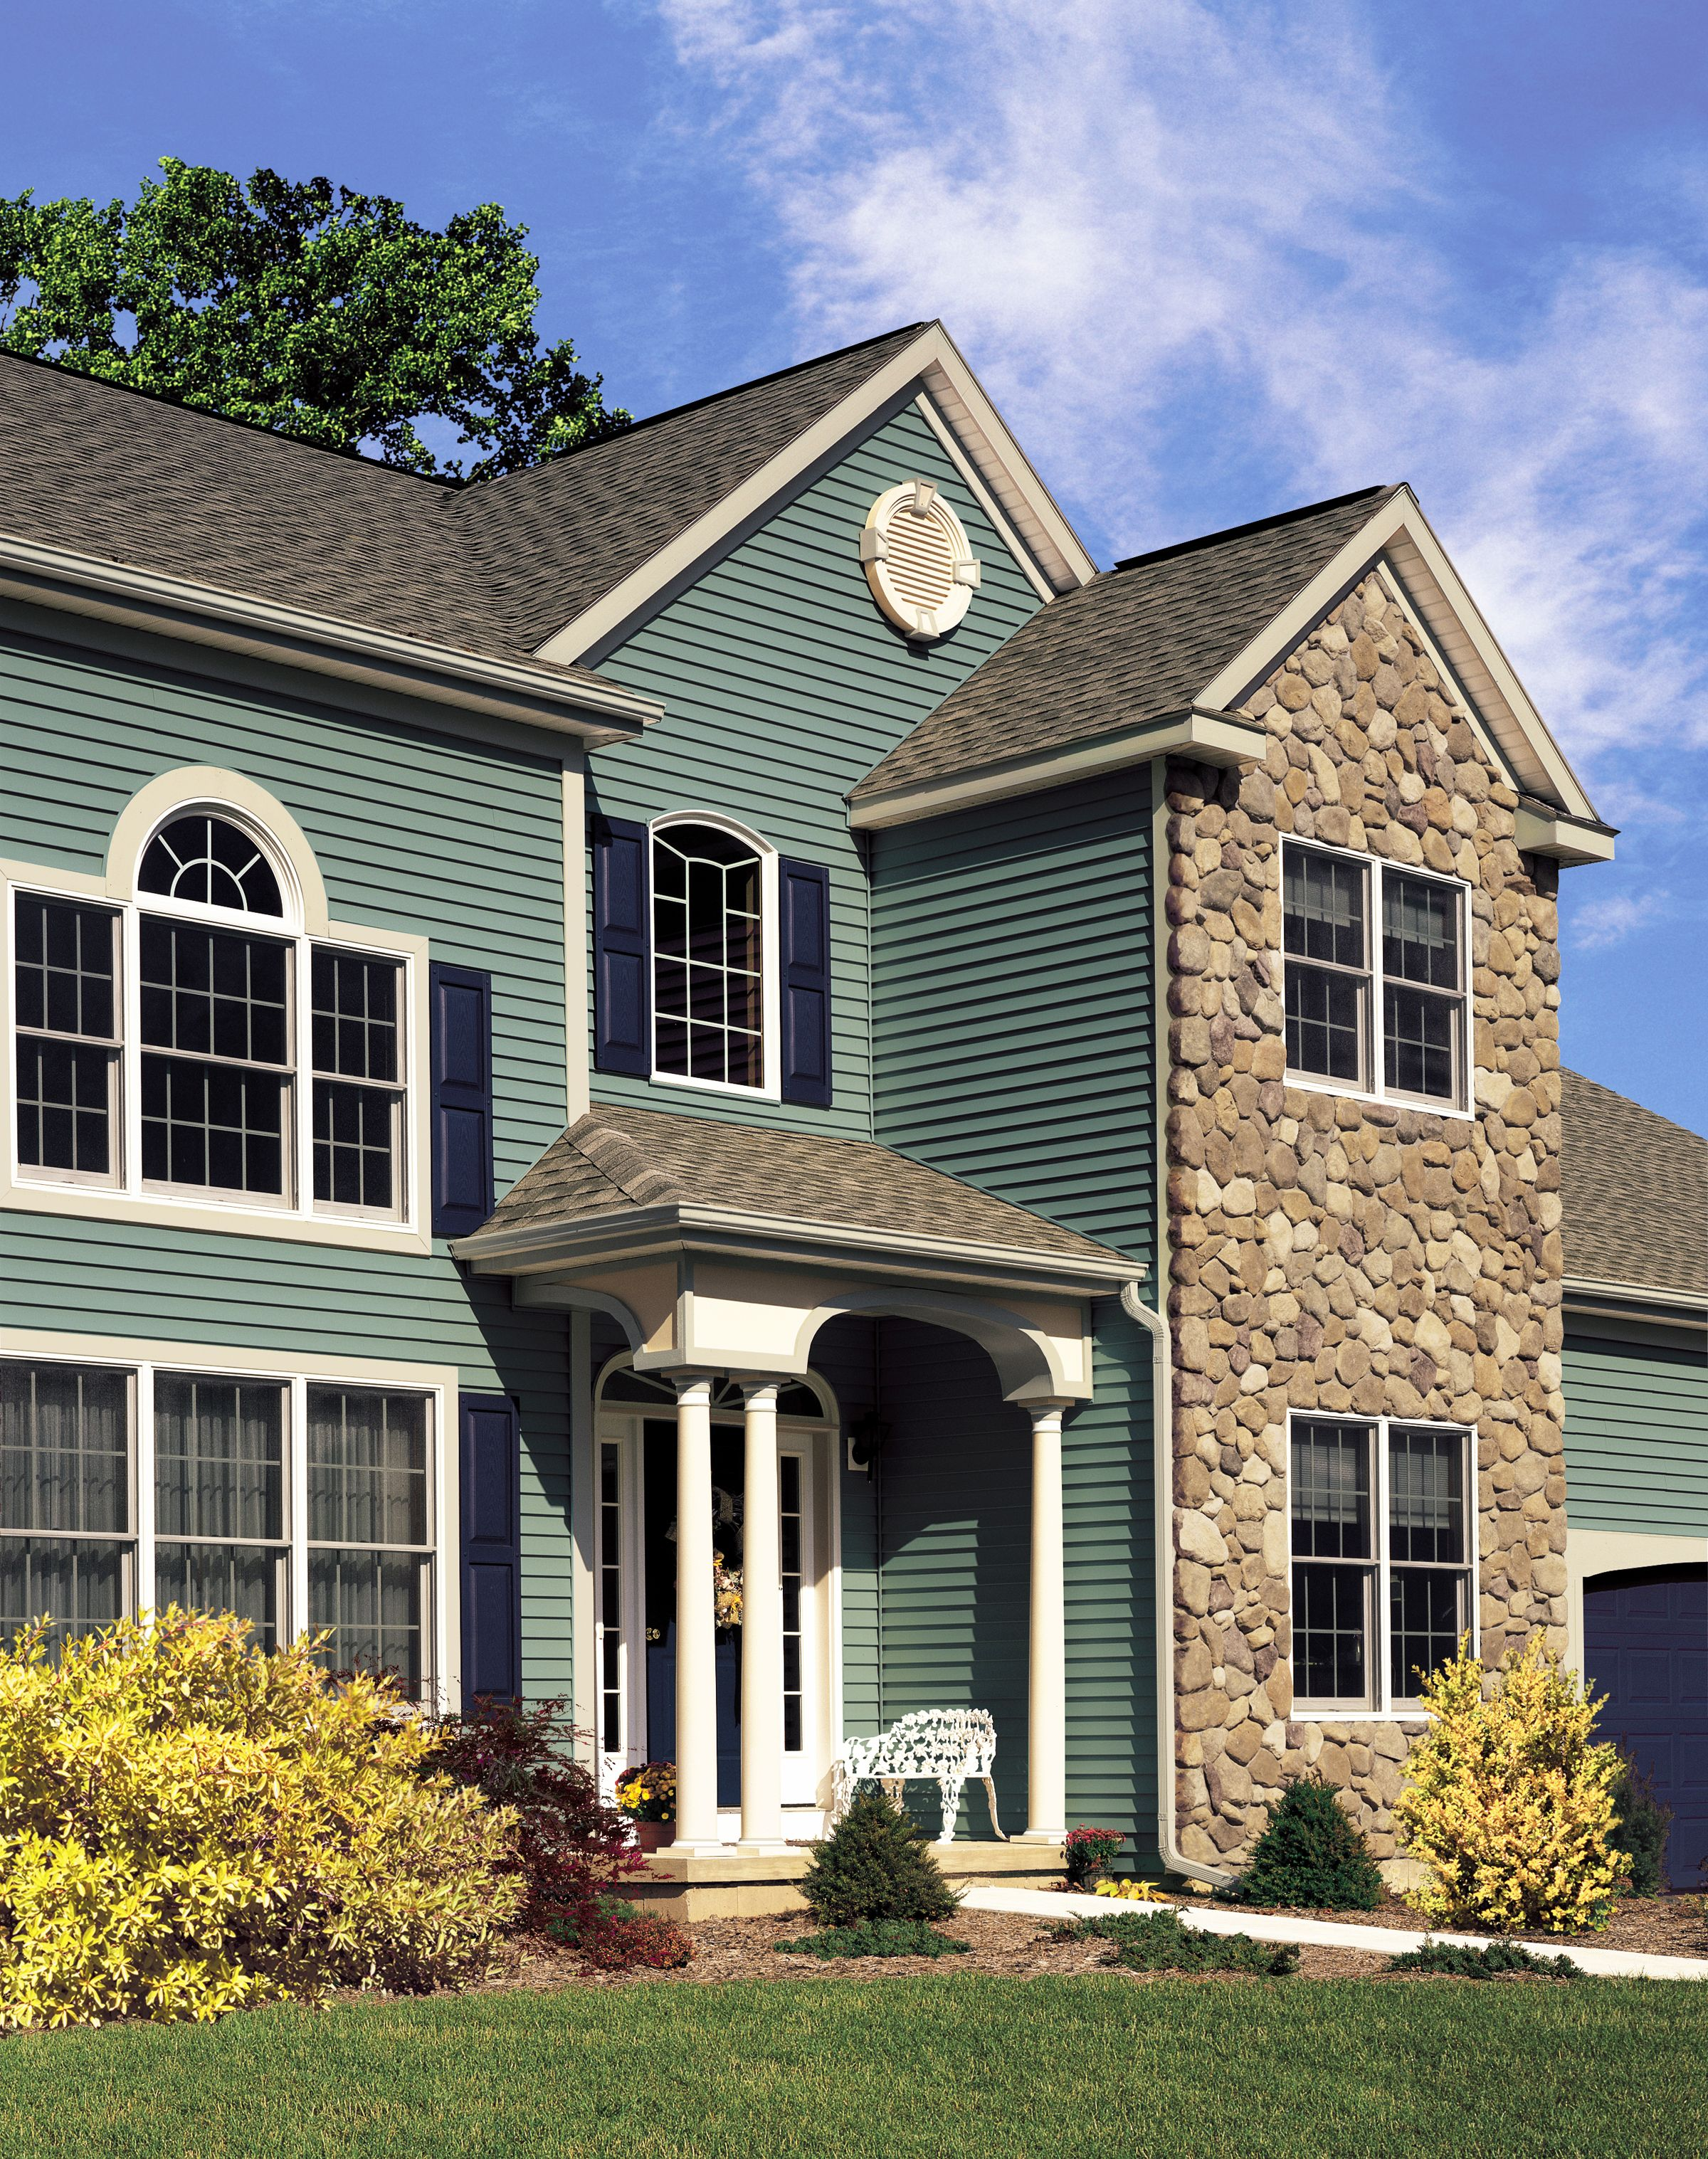 CertainTeed - Siding - Monogram - Ivy Green | Siding ...